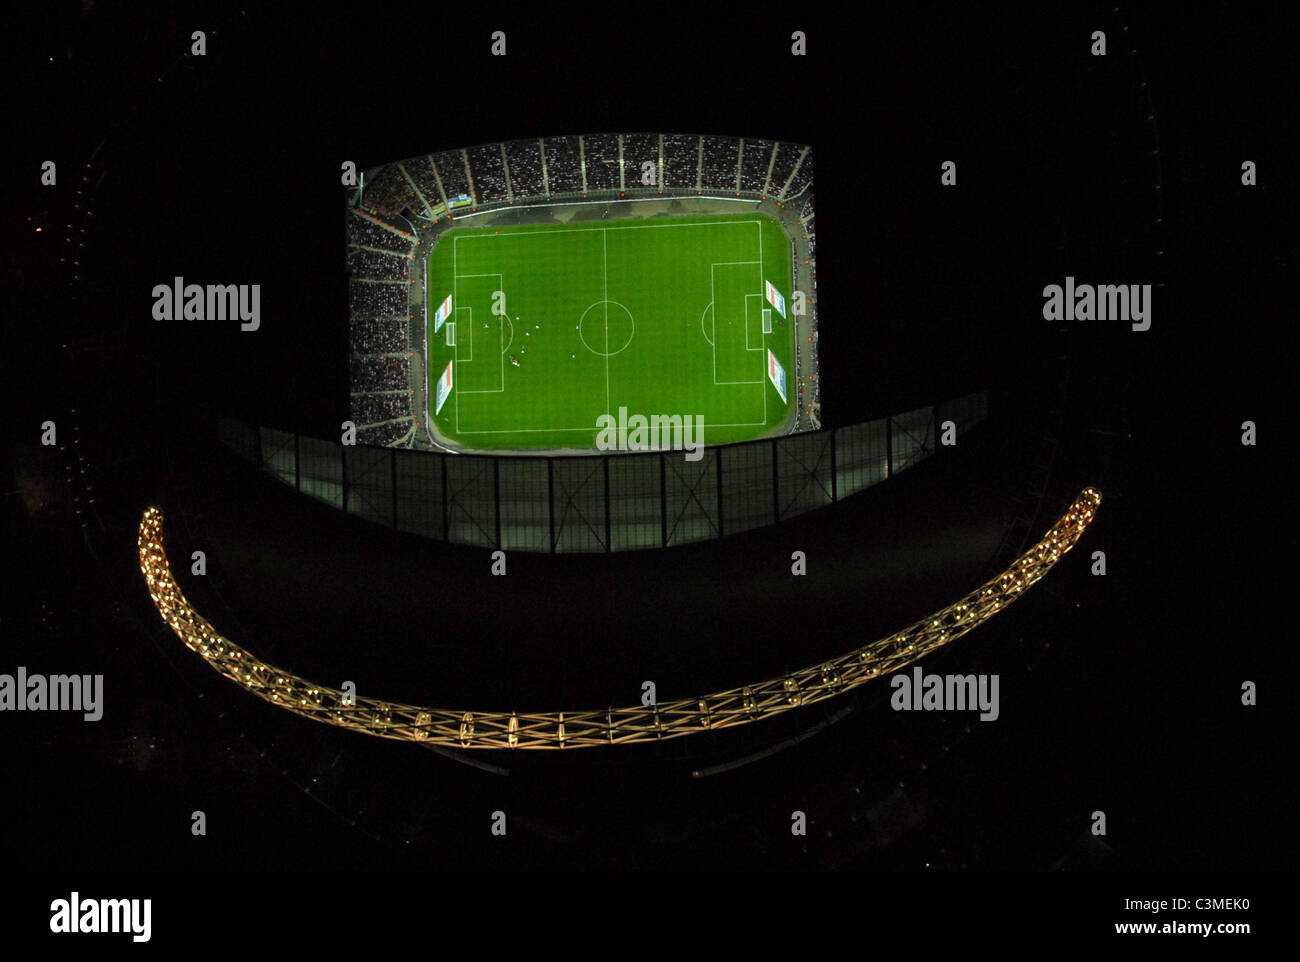 Wembley stadium at night photographed directly from above showing the arch and England international below - Stock Image